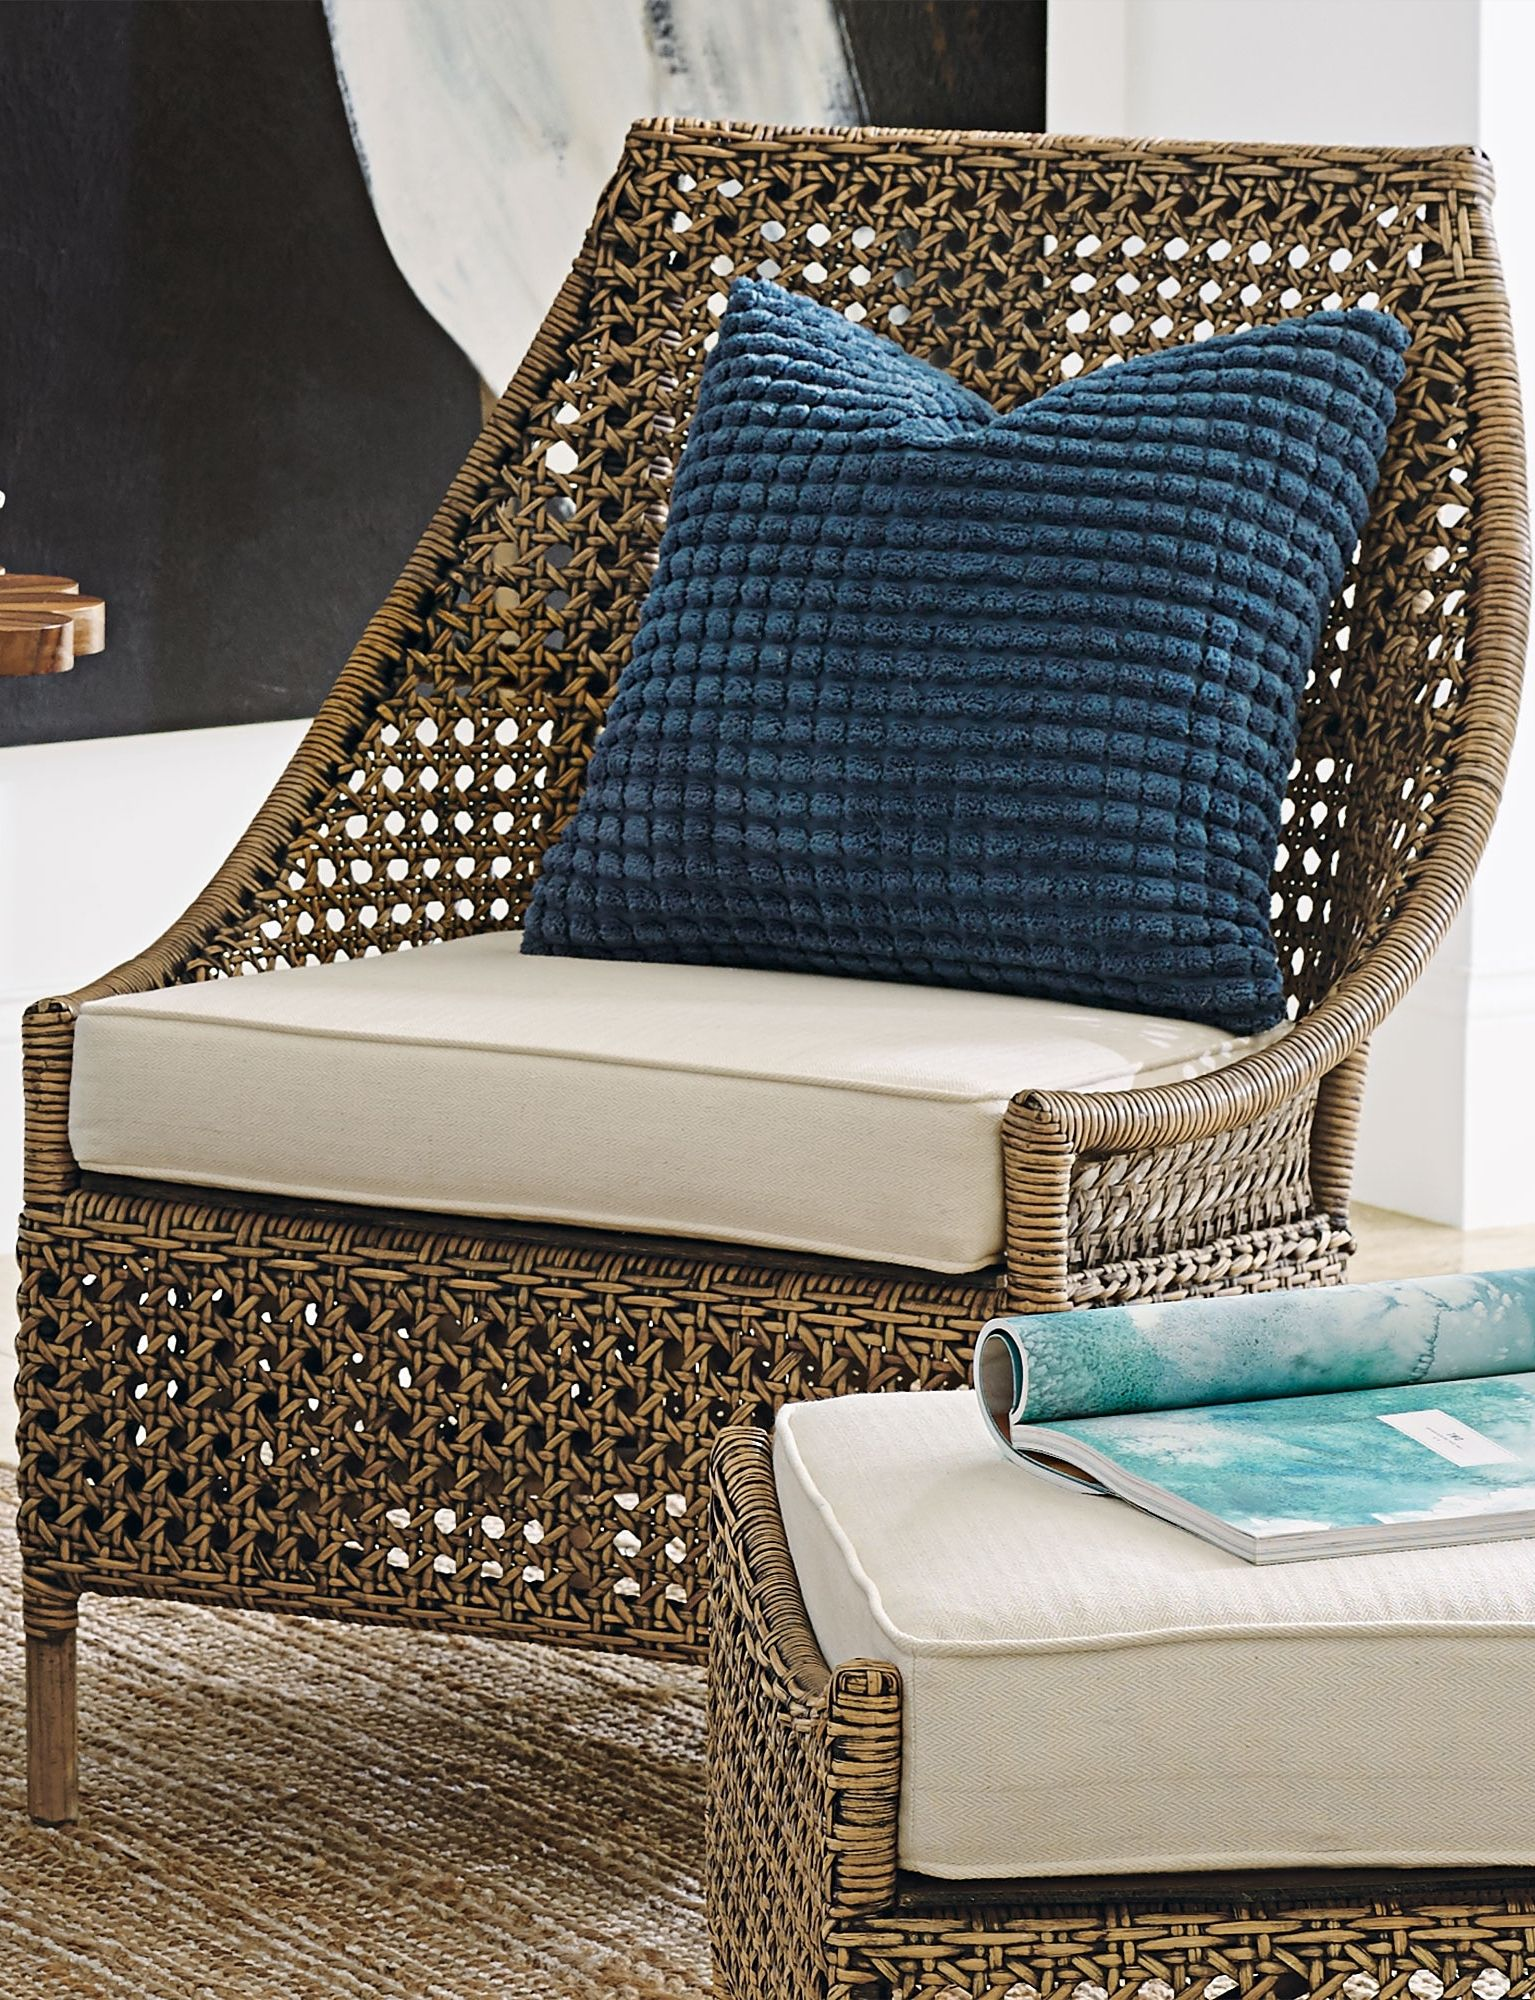 Two Stylish High Back Rattan Chairs Delight With Two Different Looks.